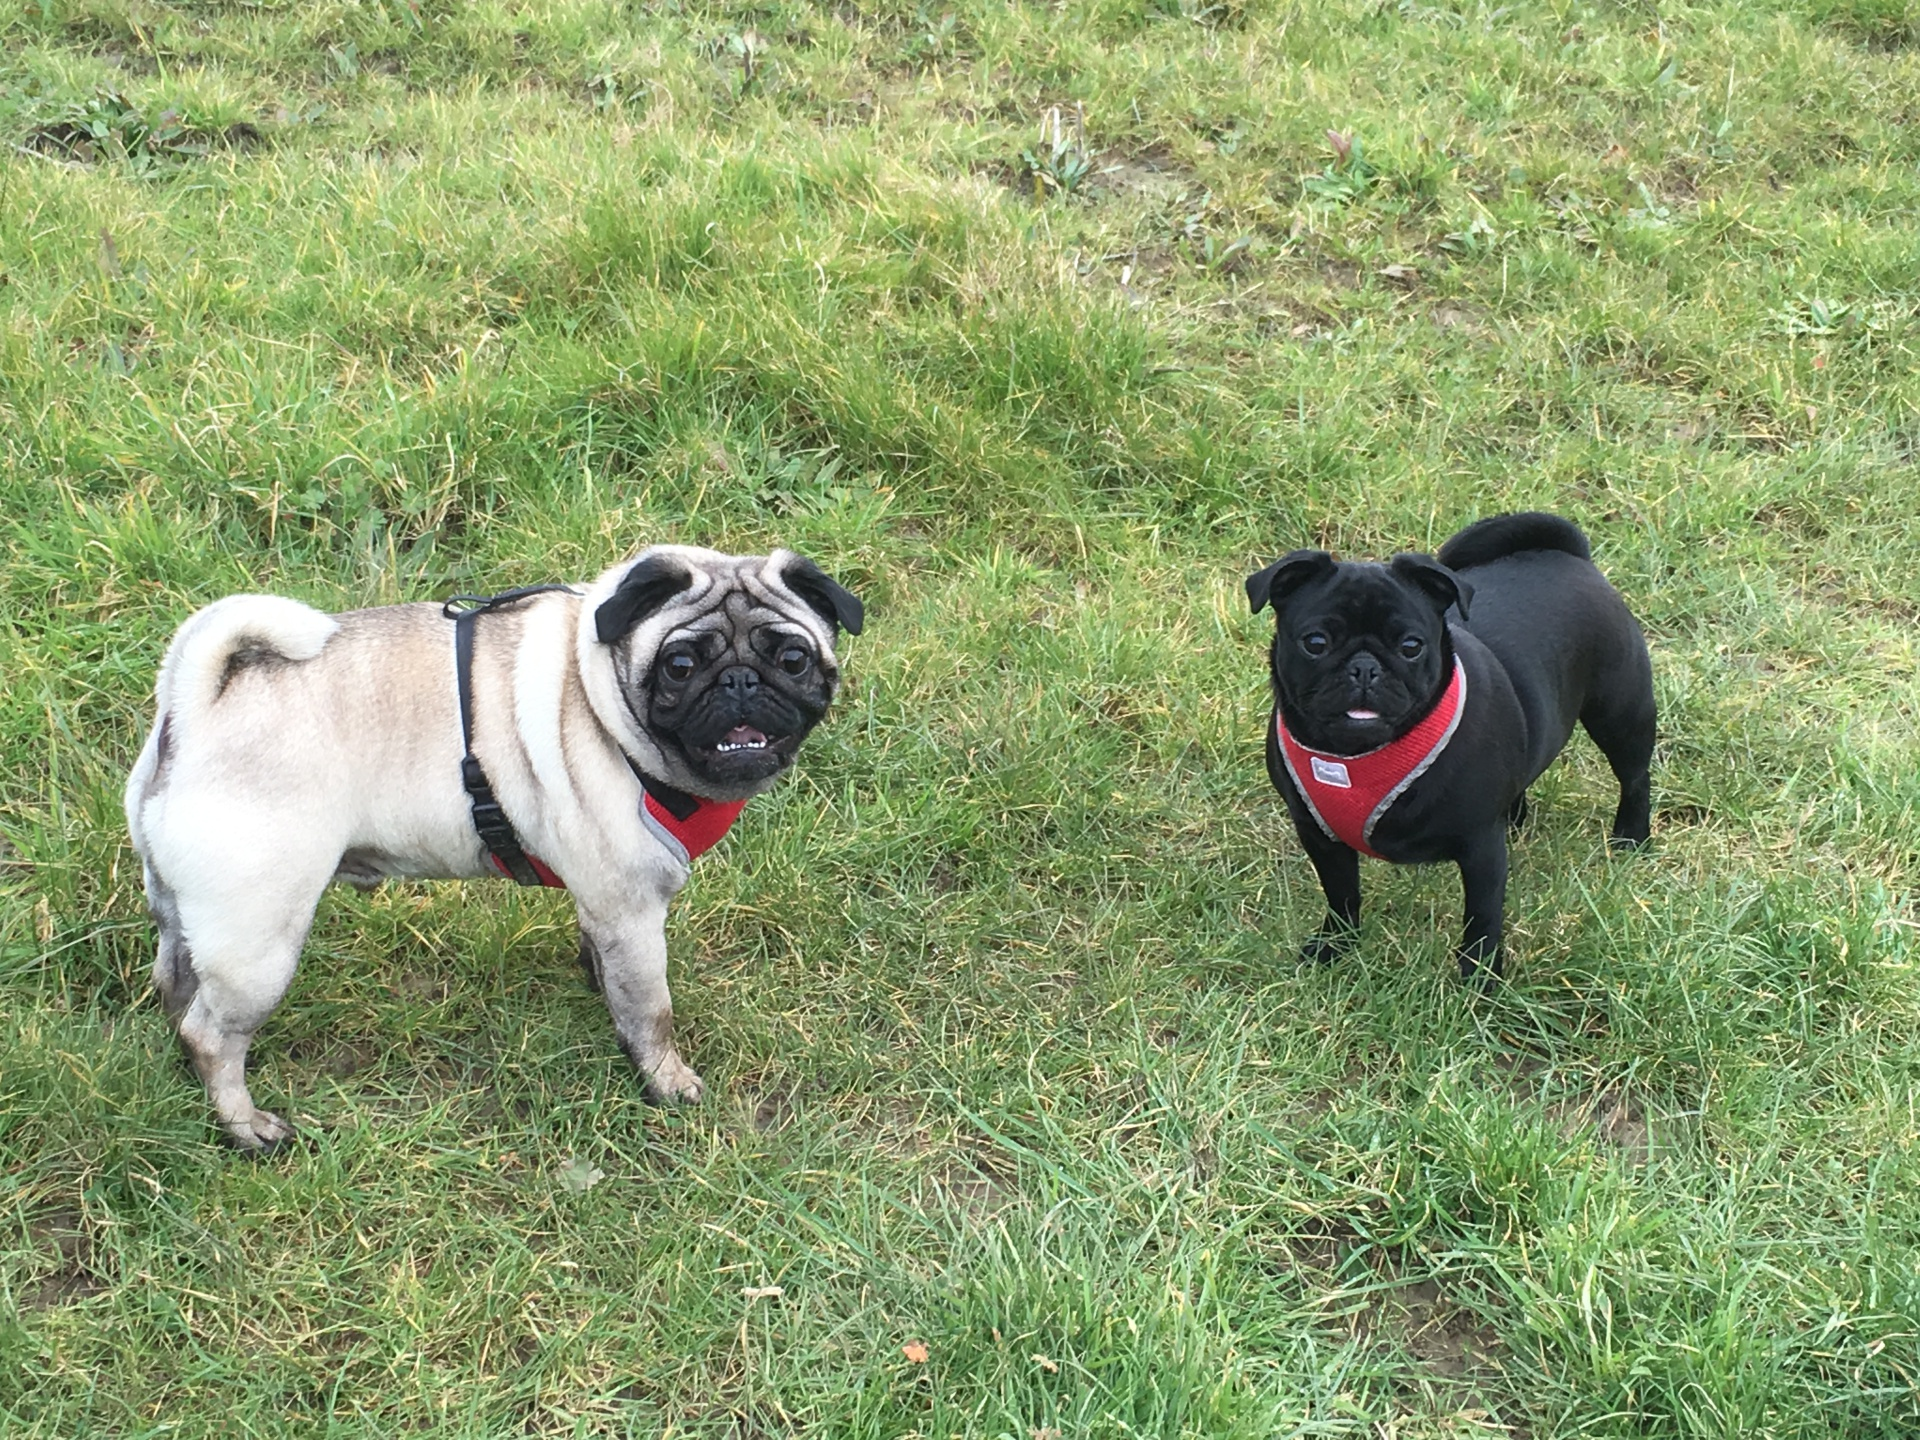 Black and fawn pugs